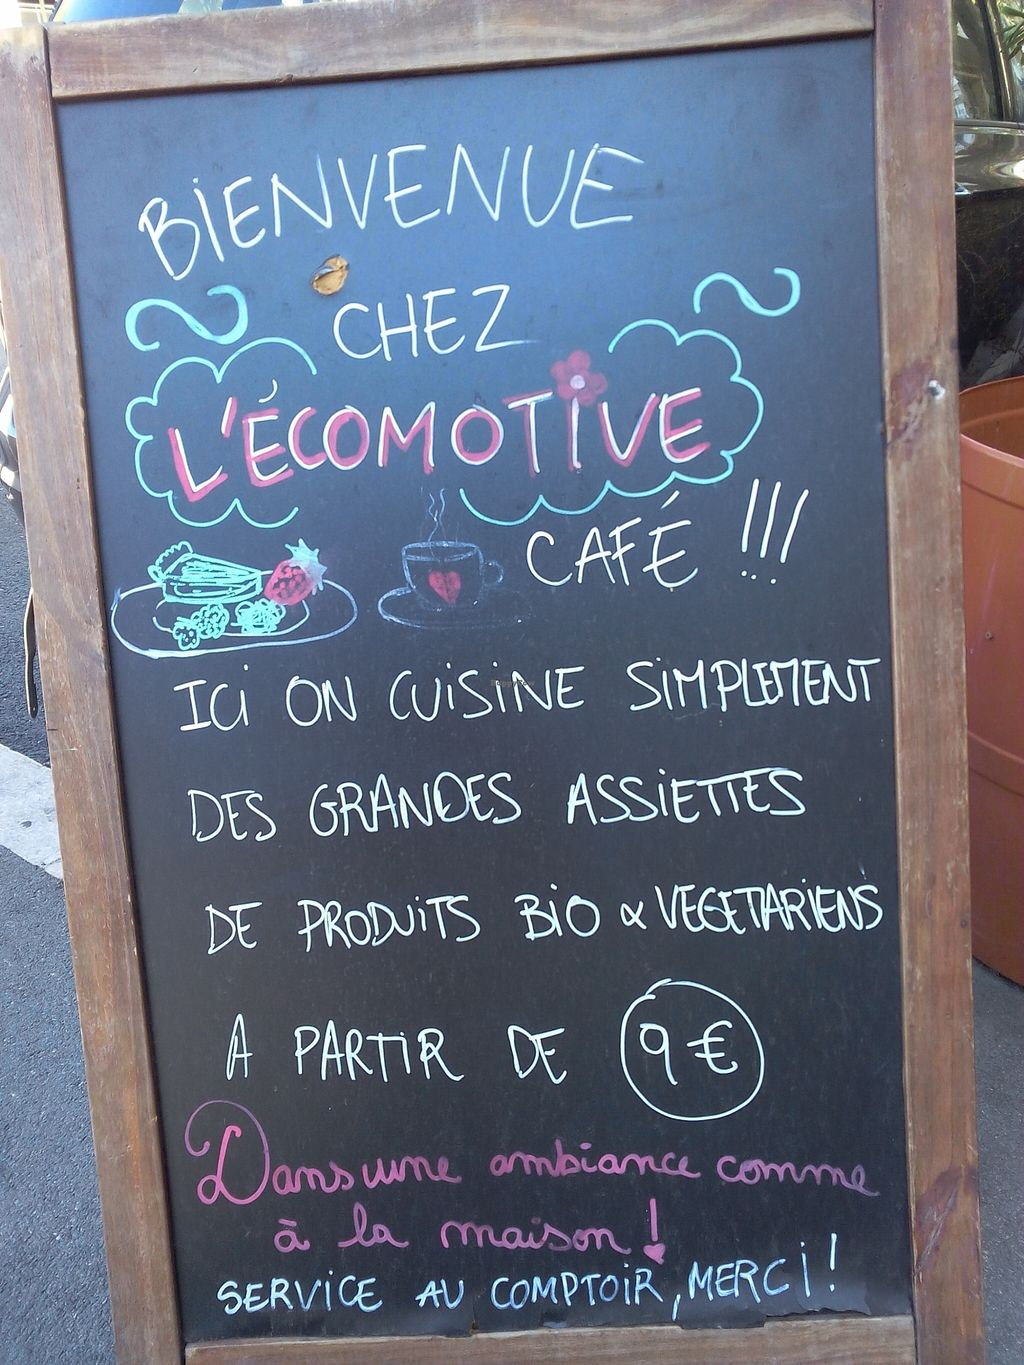 """Photo of L' Ecomotive  by <a href=""""/members/profile/vwlewis"""">vwlewis</a> <br/>Example of menu <br/> October 9, 2015  - <a href='/contact/abuse/image/38263/120675'>Report</a>"""